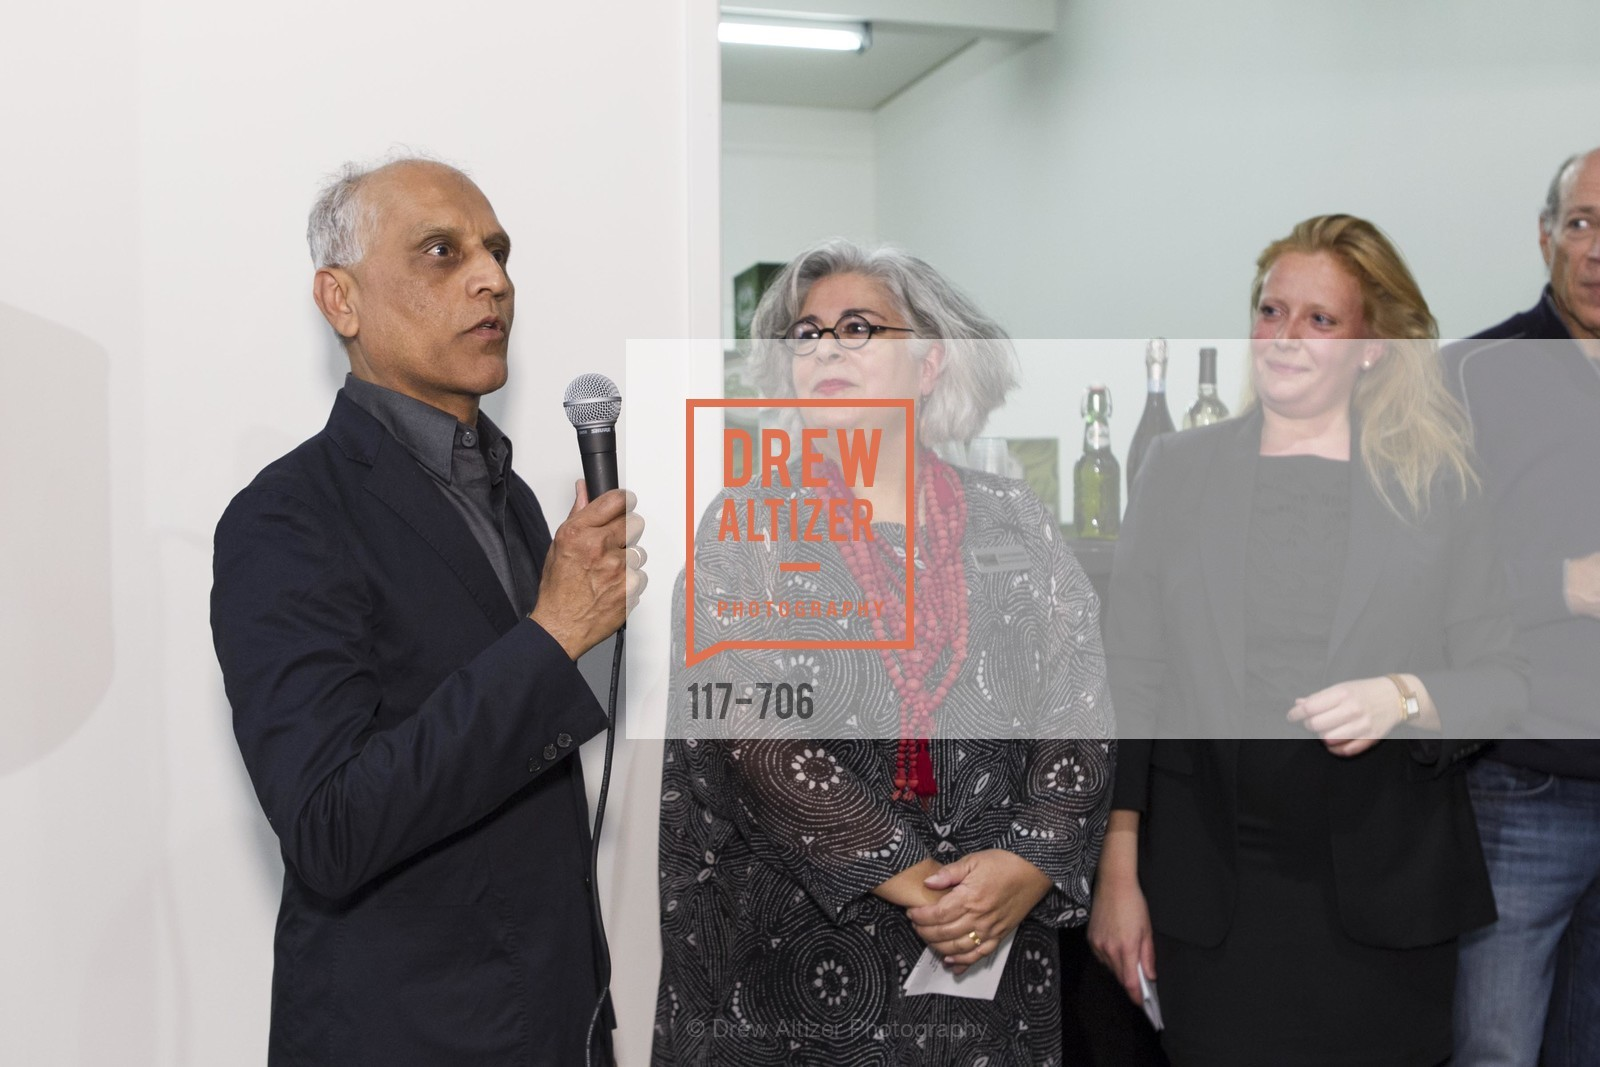 Zahid Sardar, JoAnn Edwards, Exhibit Opening at the MUSEUM OF CRAFT AND DESIGN - Hands Off: New Dutch Design at the Confluence of Technology & Craft, US, May 7th, 2015,Drew Altizer, Drew Altizer Photography, full-service agency, private events, San Francisco photographer, photographer california